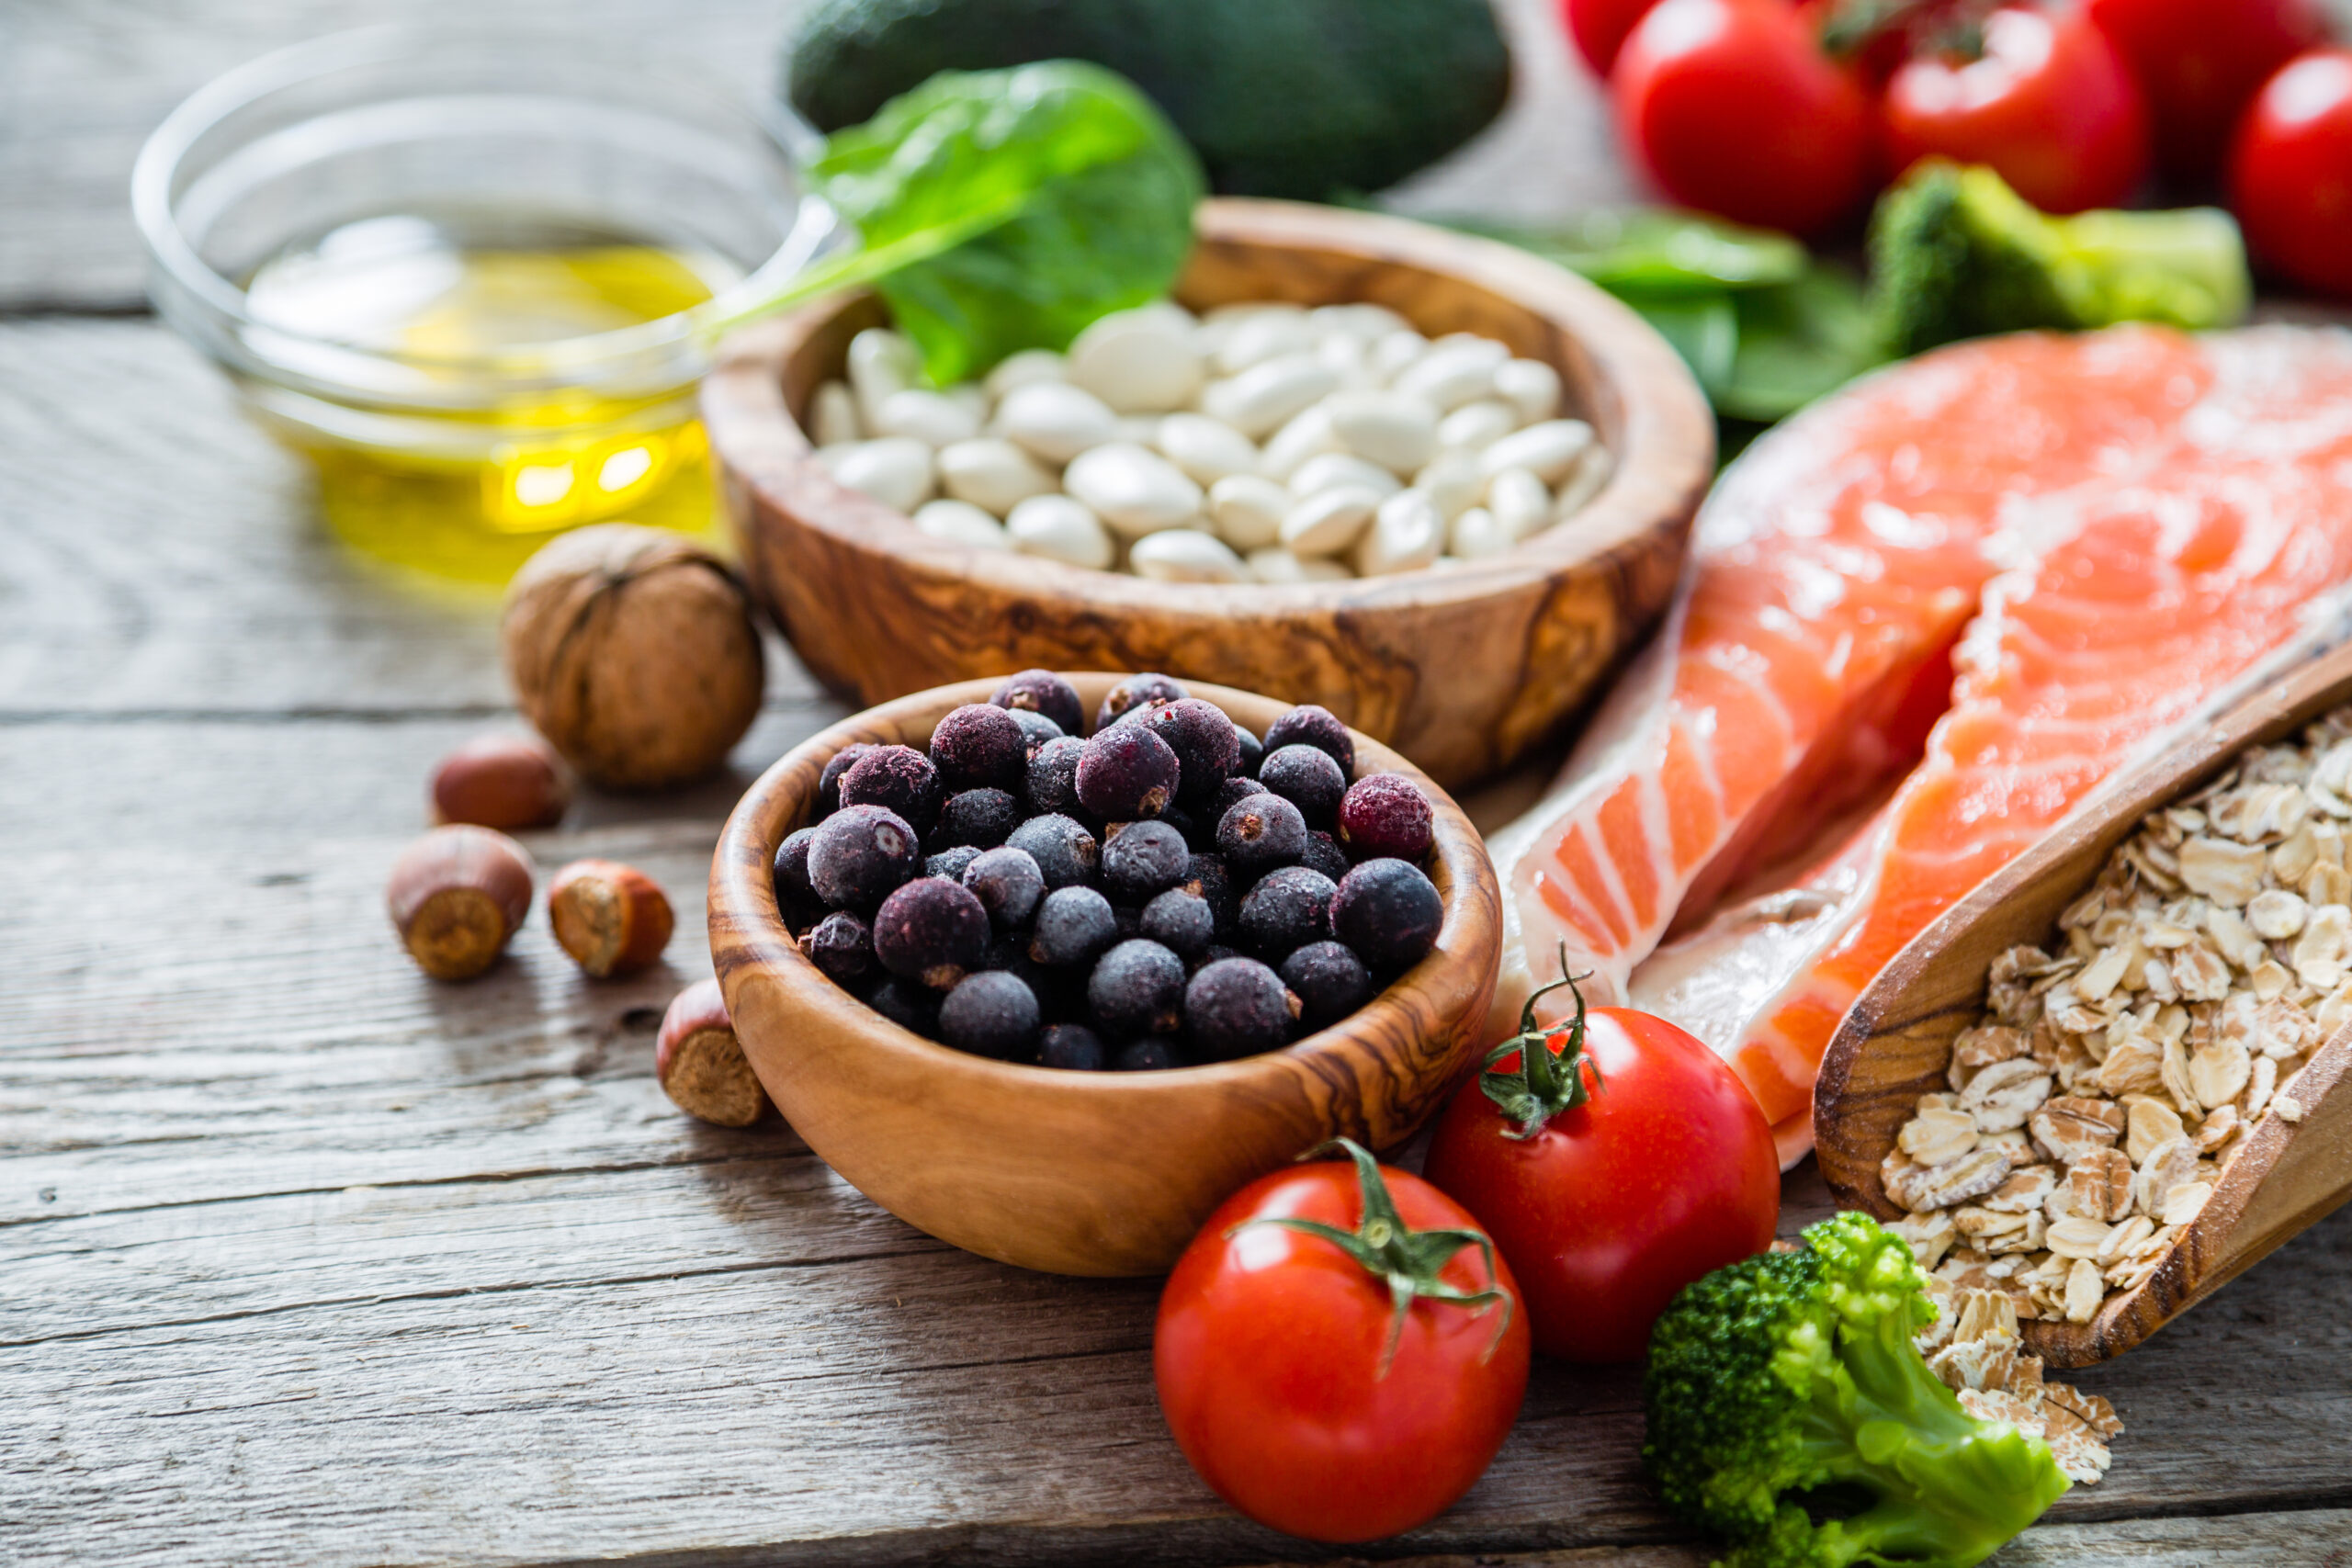 A variety of healthful foods including nuts, beans, berries, tomatoes, broccoli, salmon, and oats